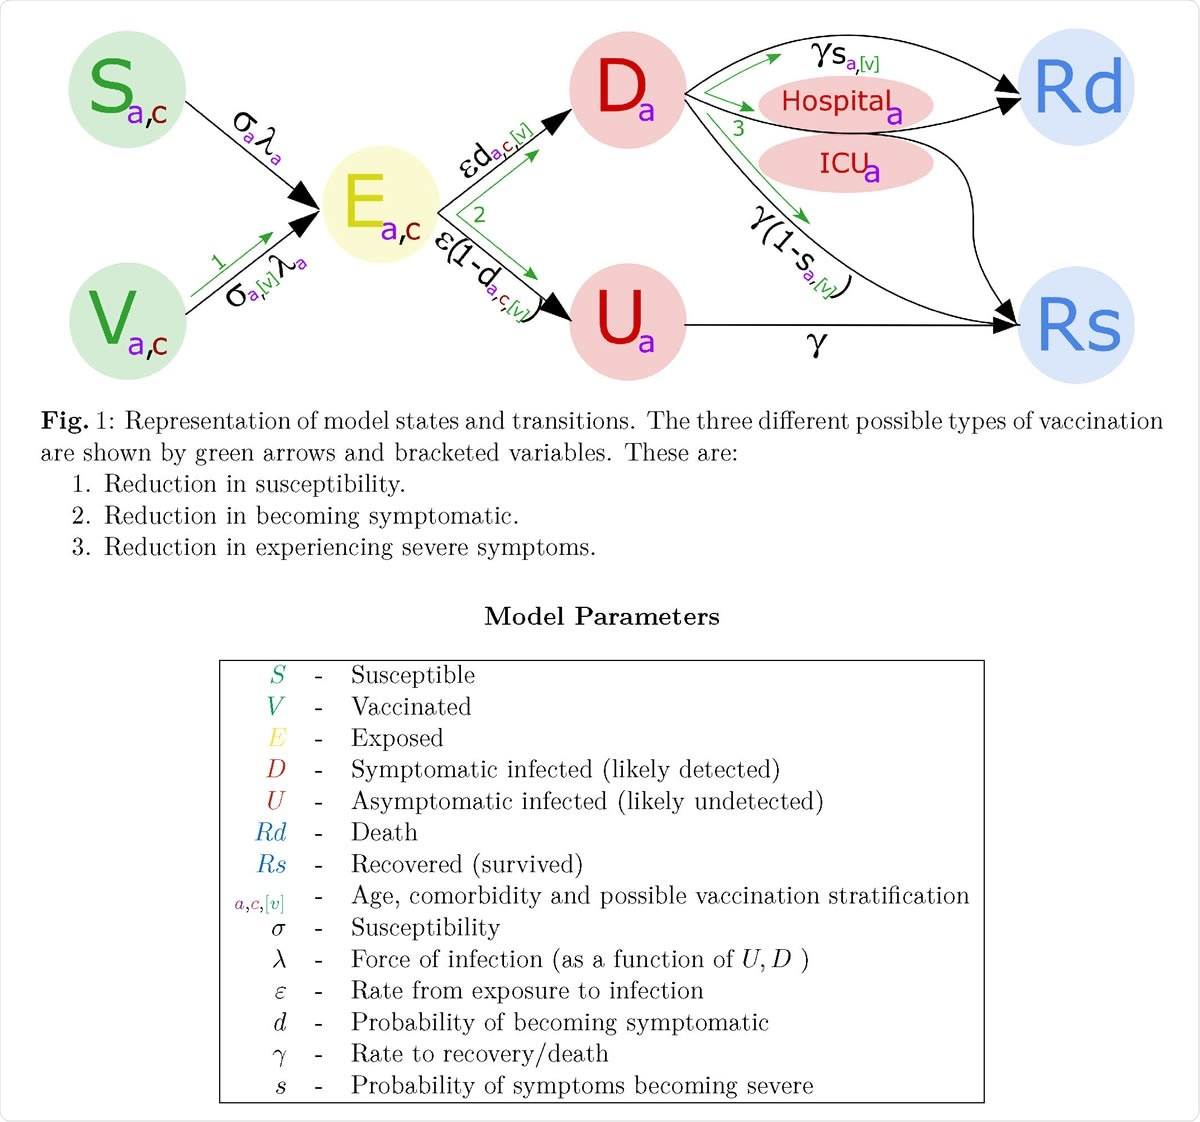 Representation of model states and transitions